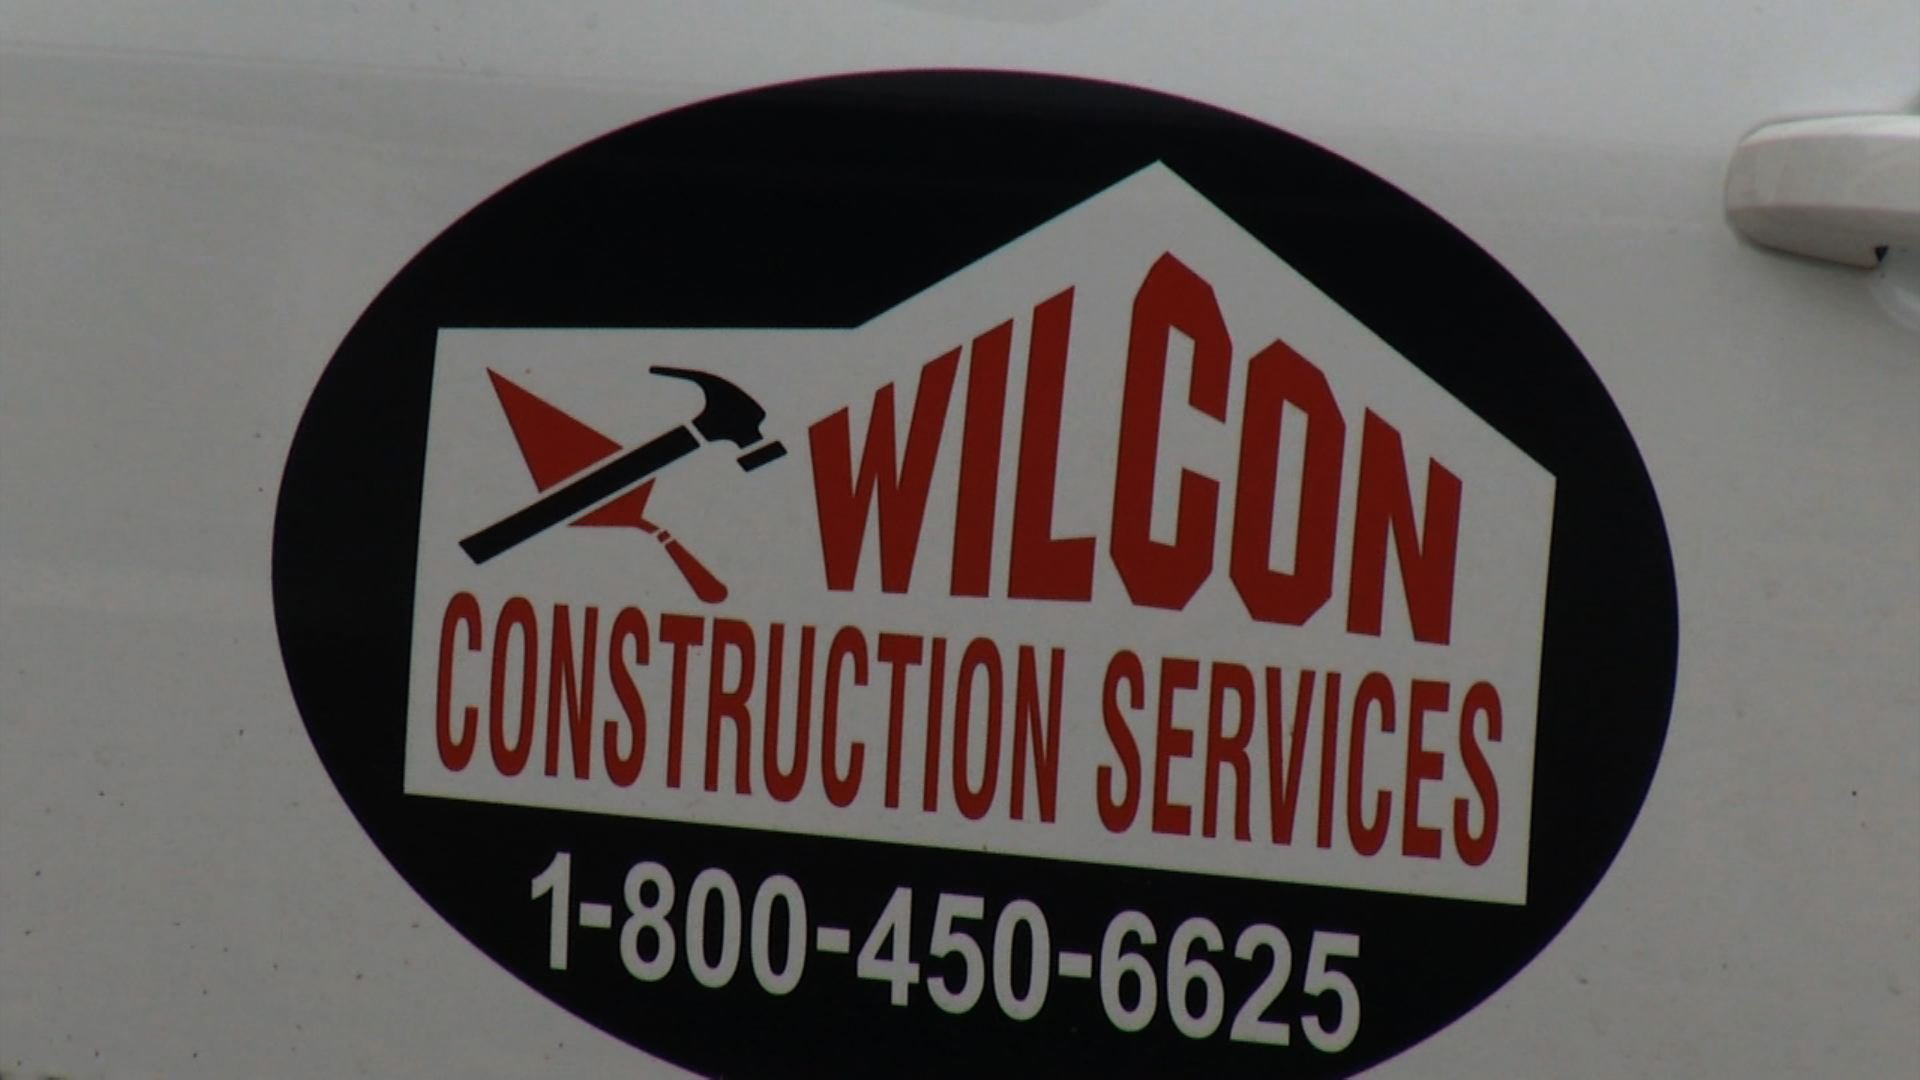 2017 05 a great miracle minnesota company - Hometown Business Connection Wilcon Construction